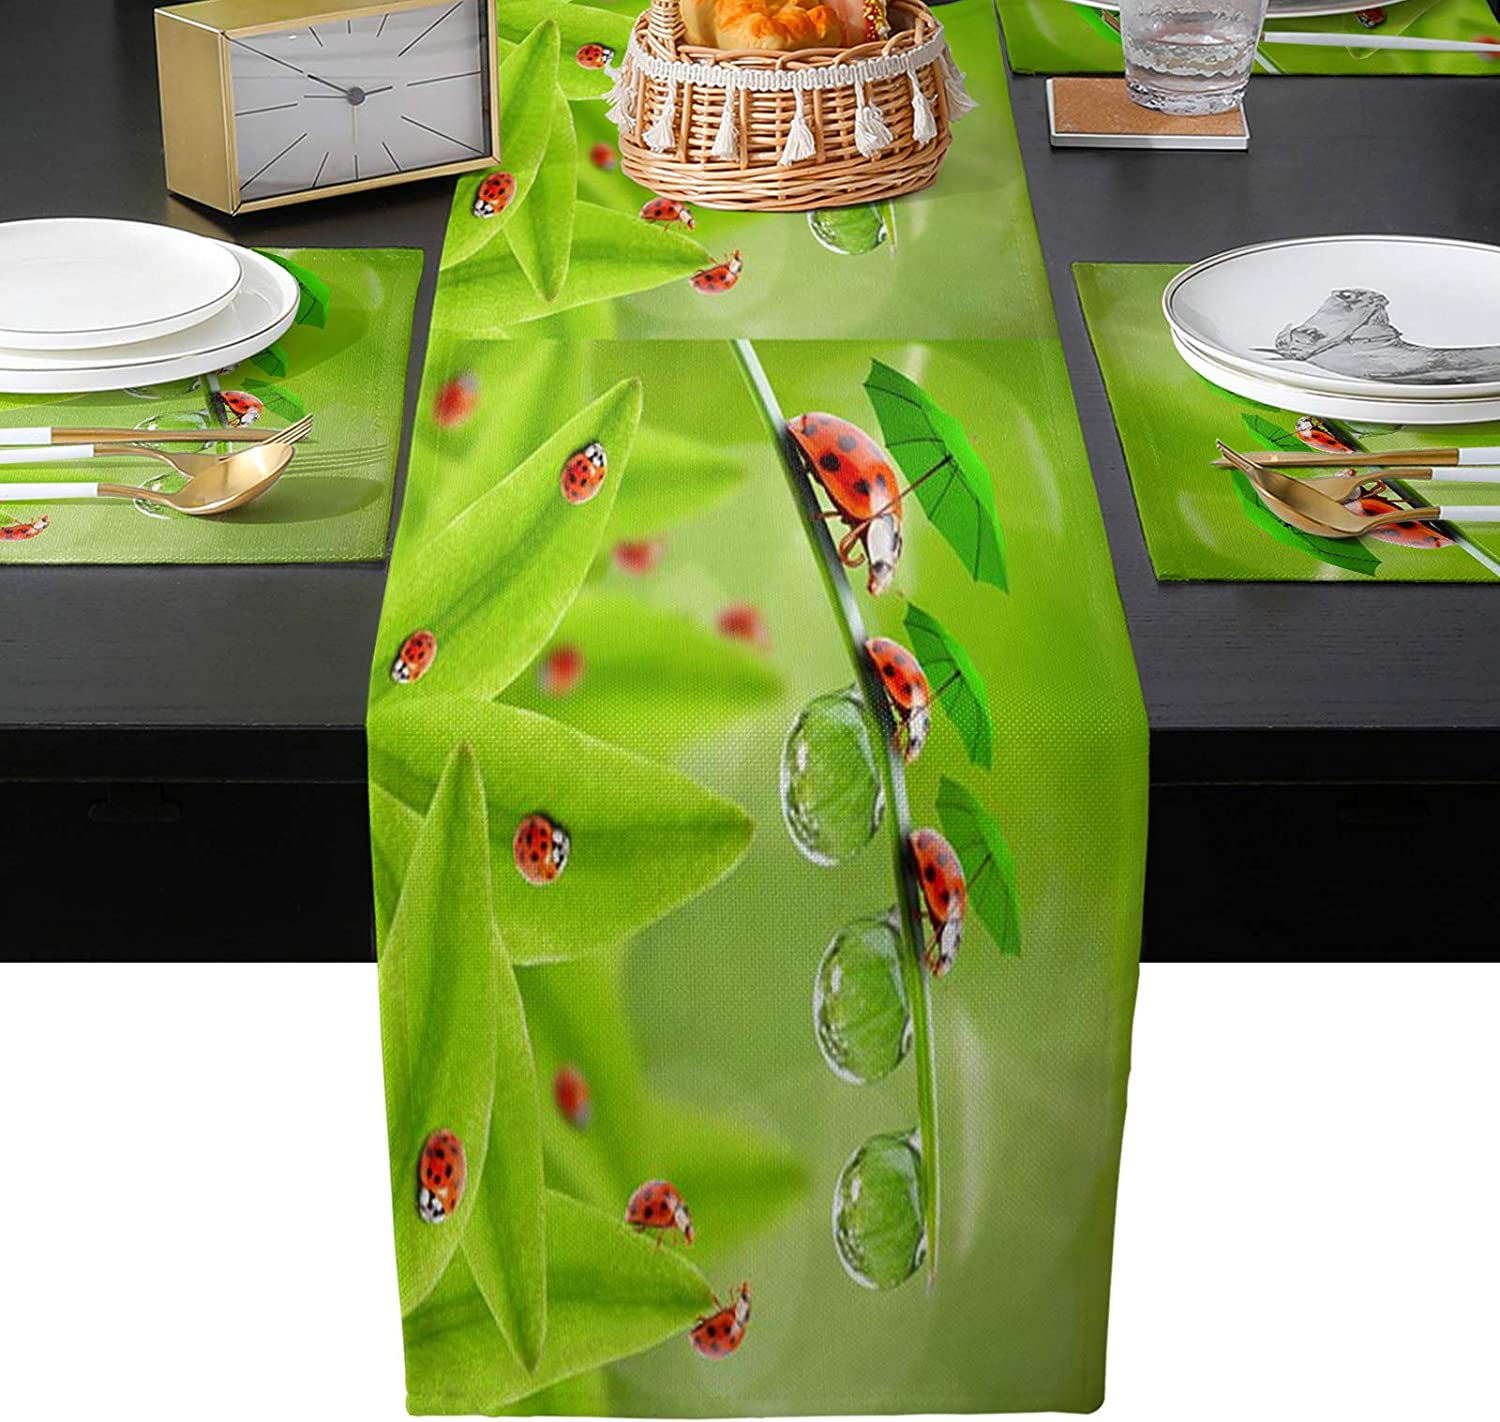 Artwork Store 70 Inch Table Runner and お見舞い 6 f of 日本未発売 Kits Placemats Set